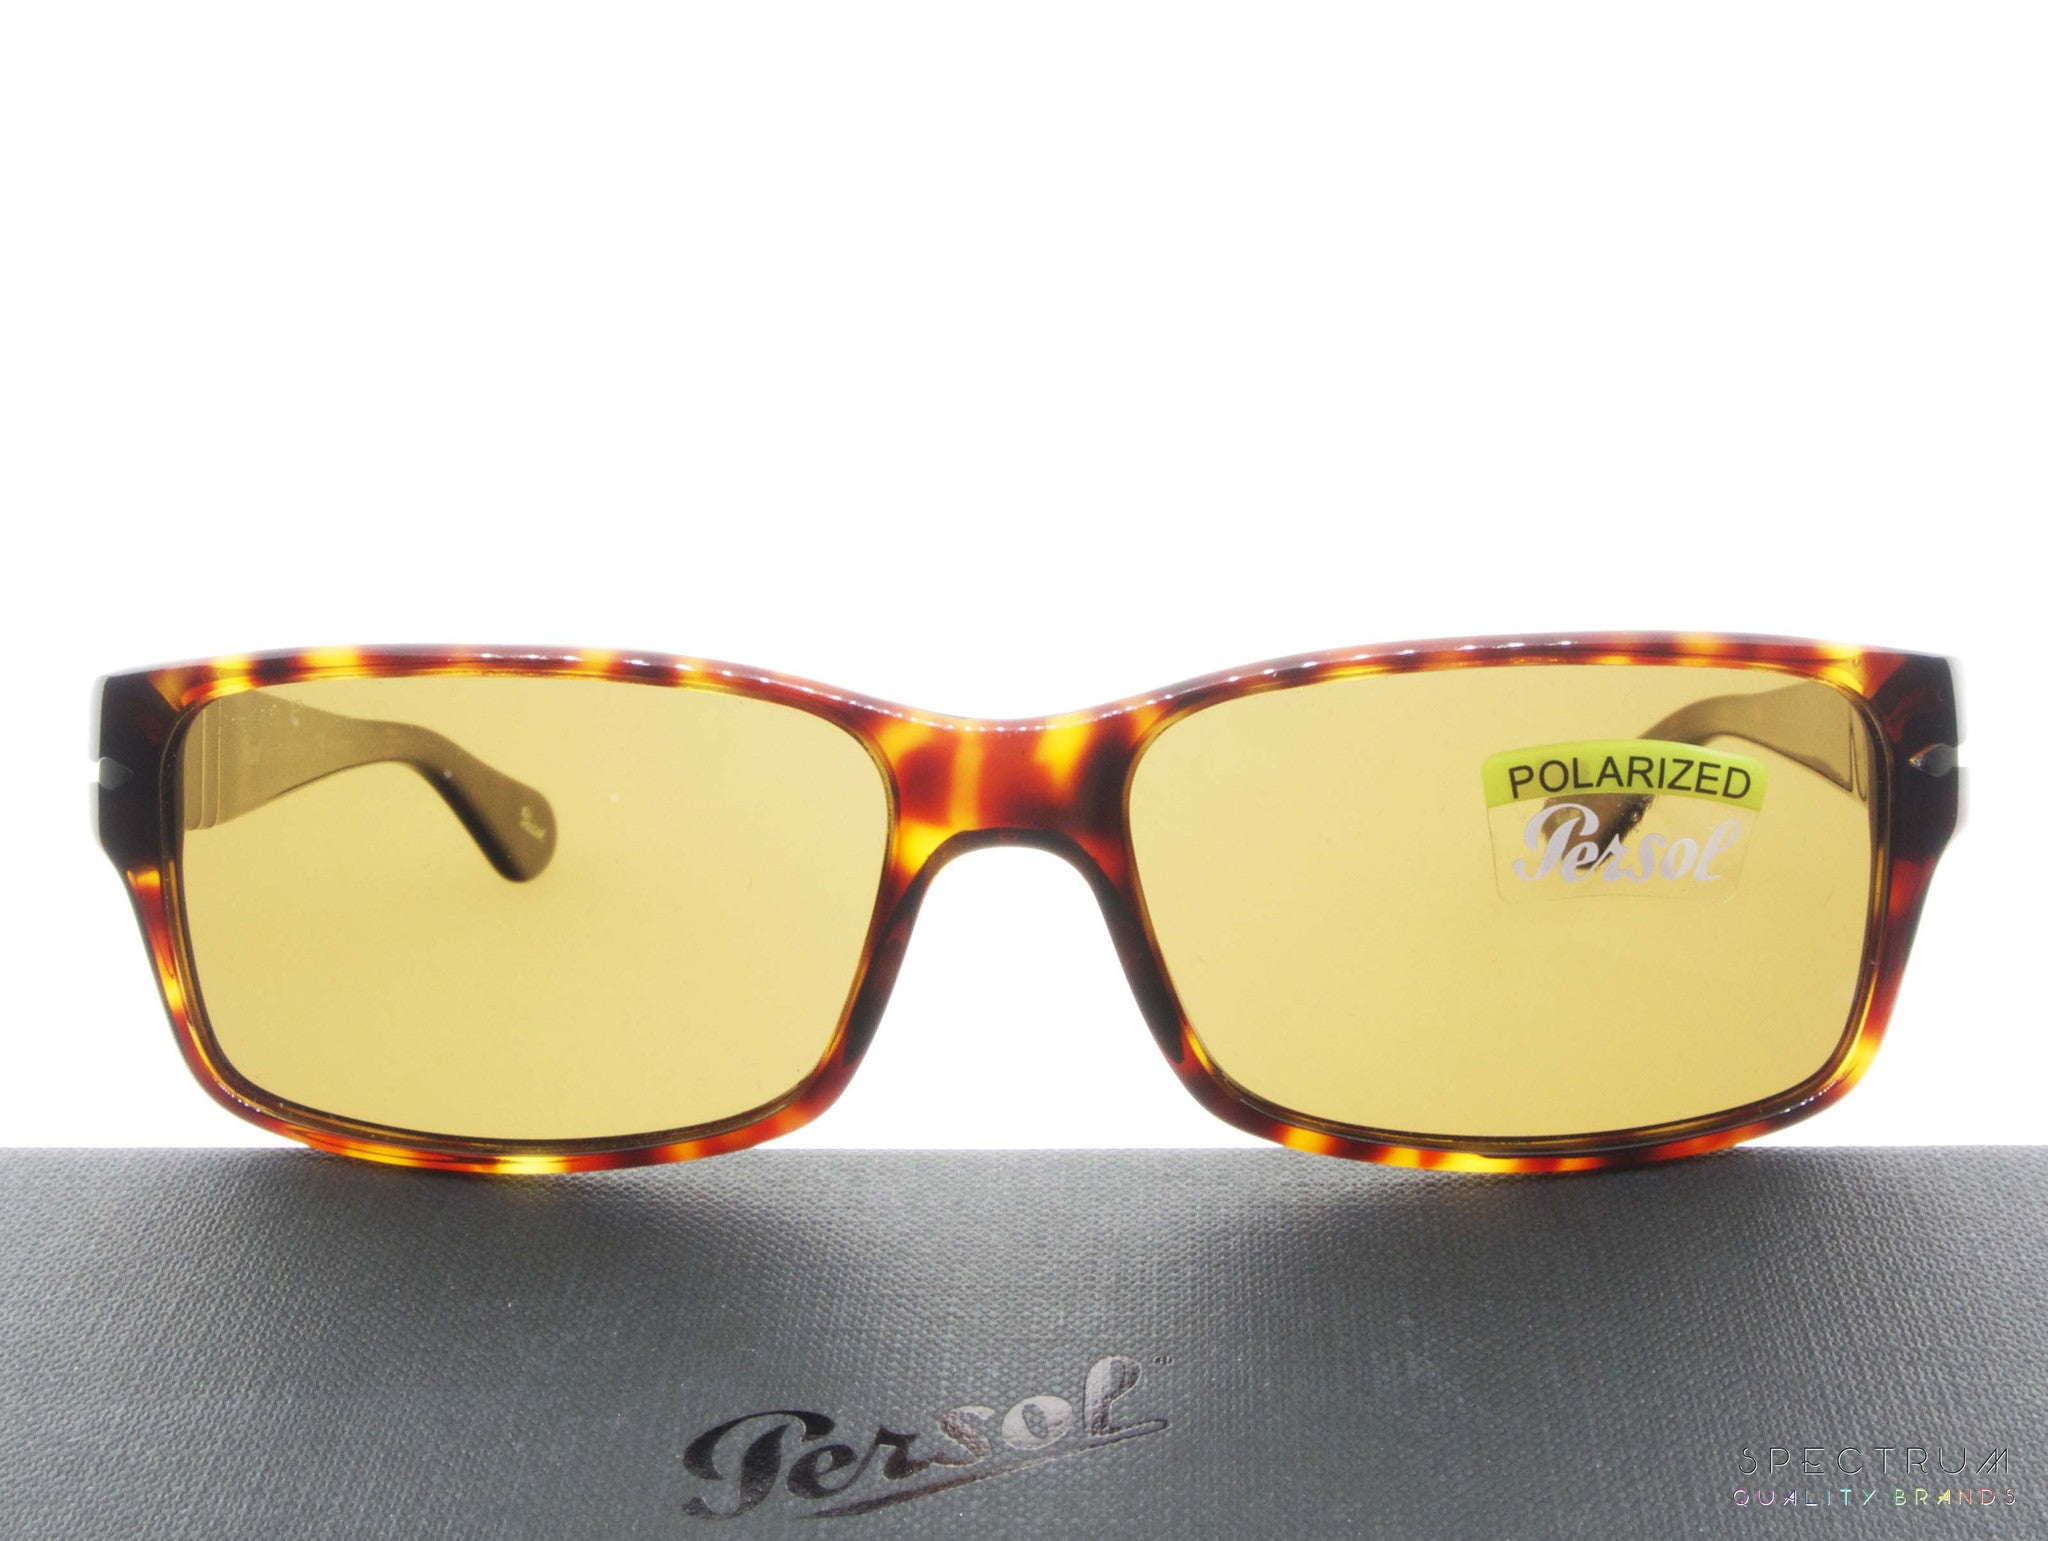 87c7ff0324 Persol Sunglasses 2803S 24 57 Havana with Brown Polarized Lenses Size 58